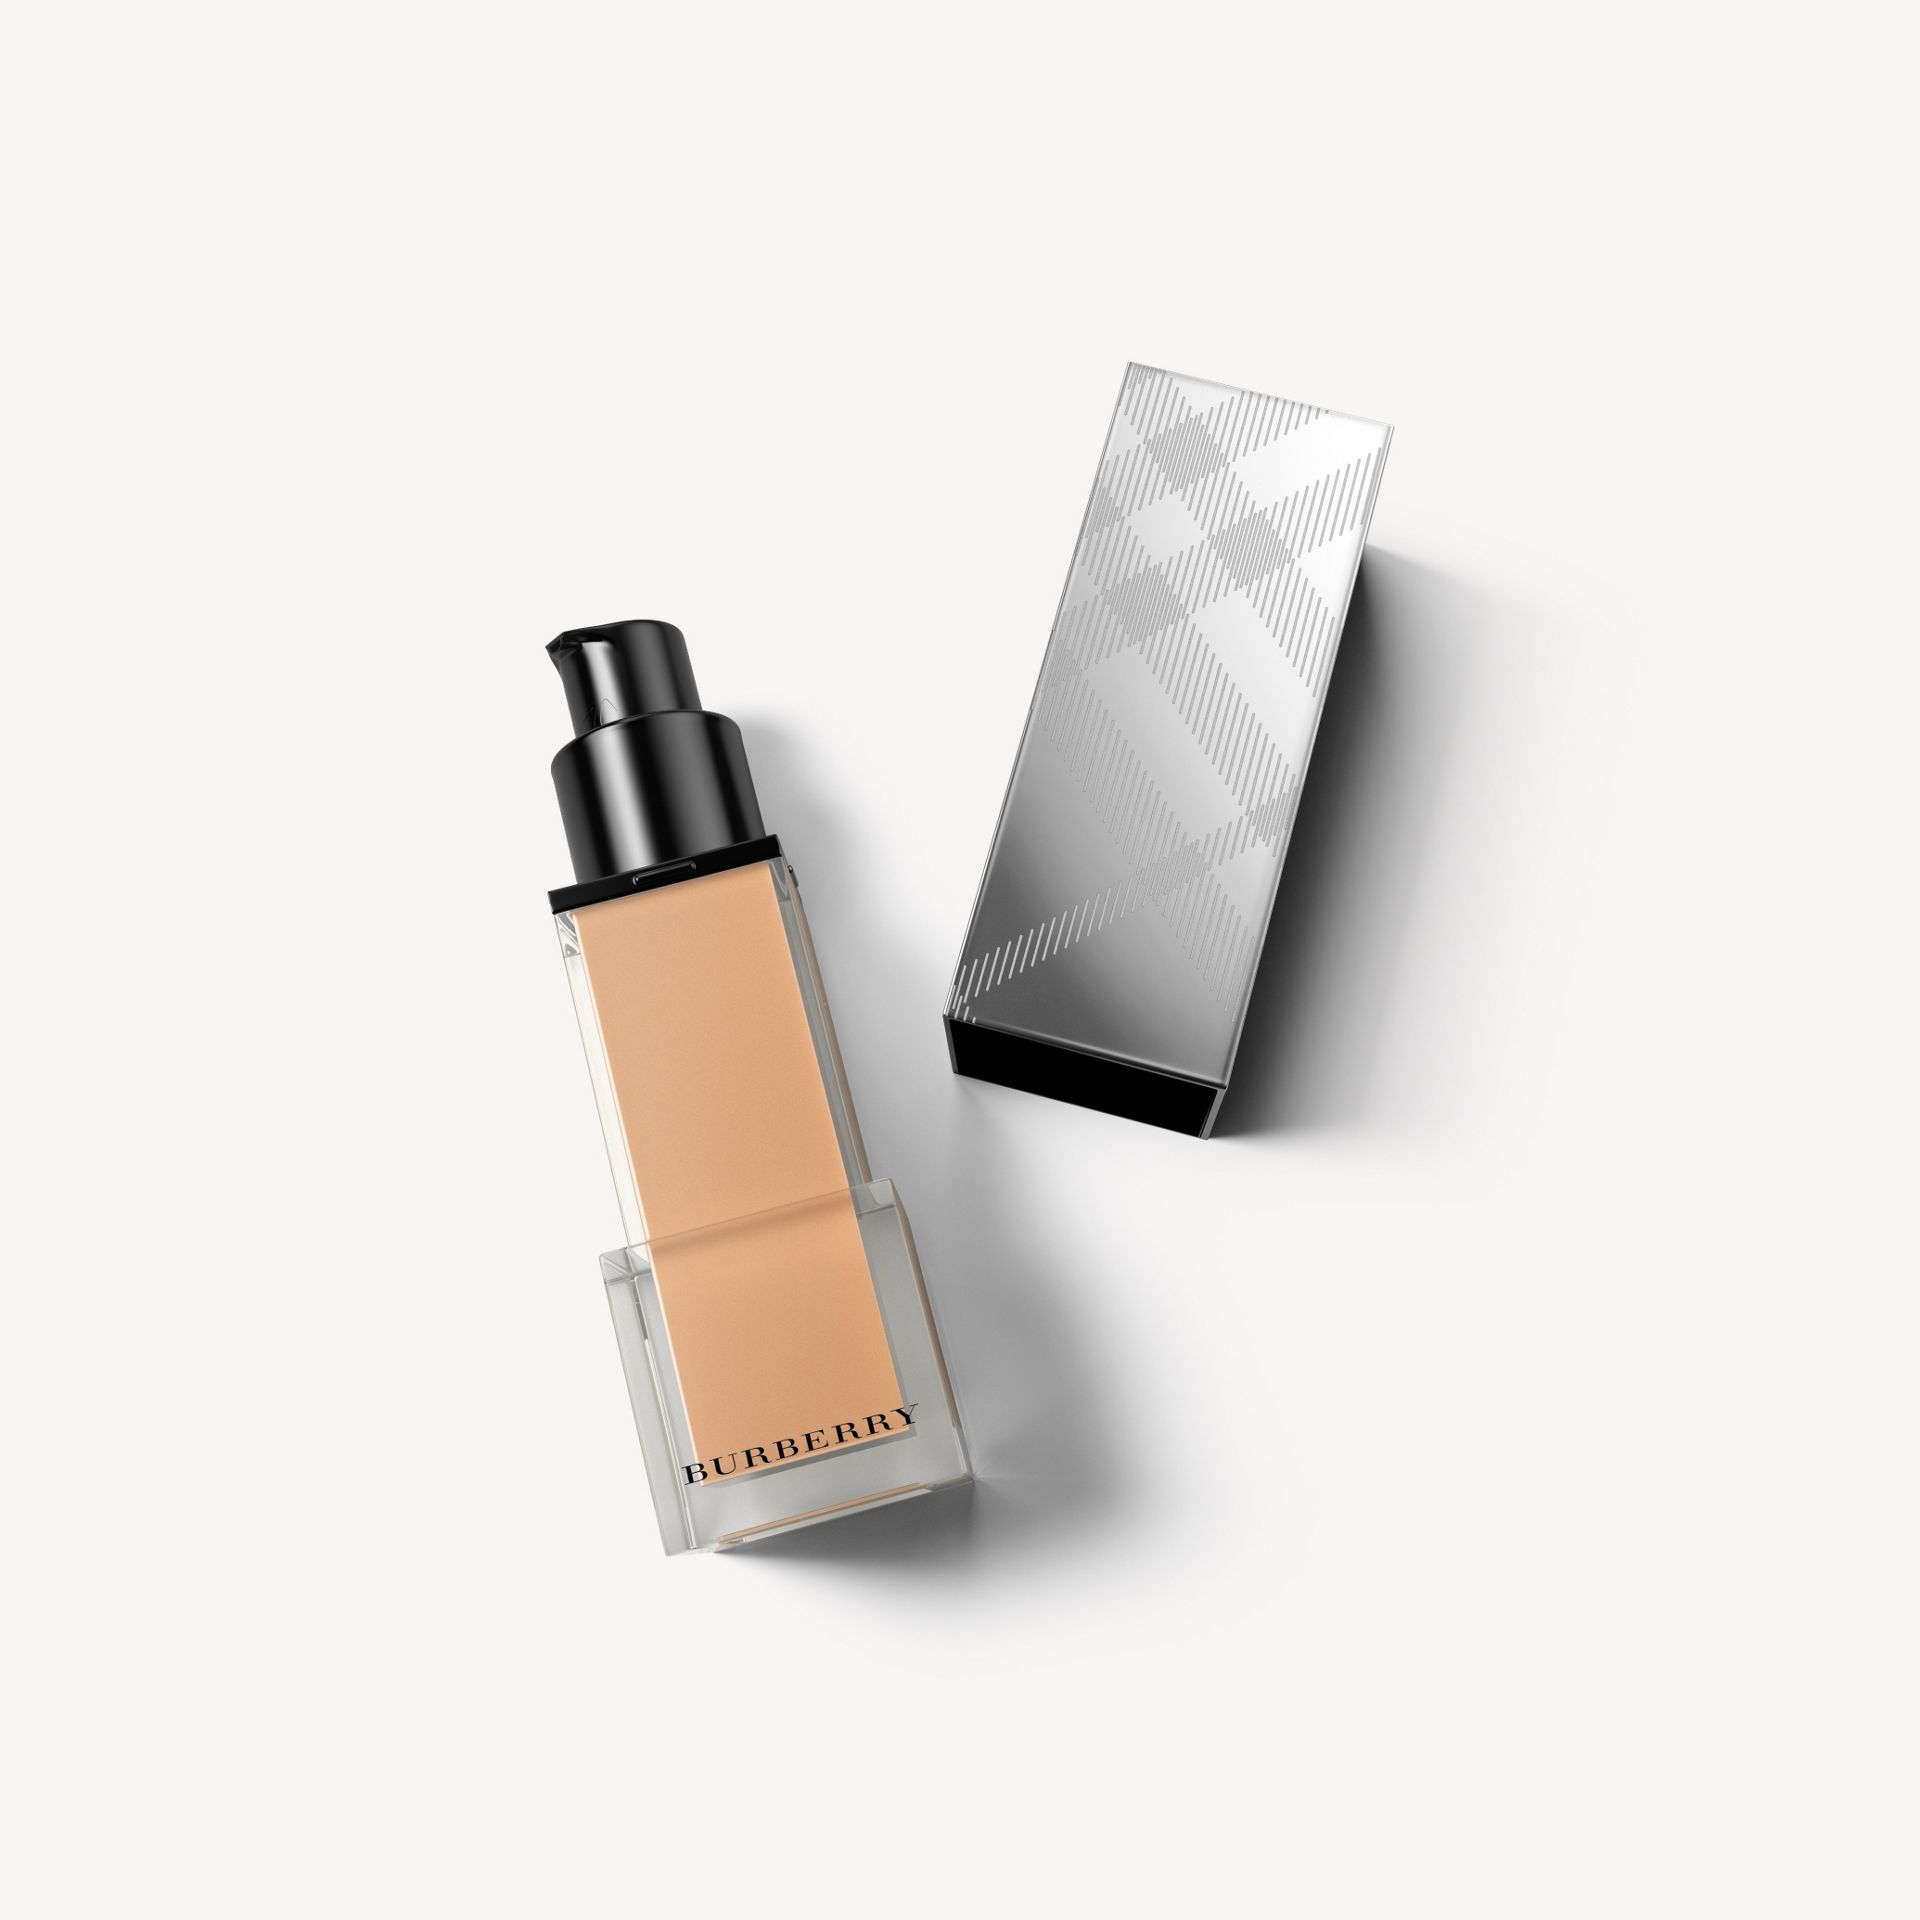 Warm nude 34 Fresh Glow Foundation SPF 15 PA+++ – Warm Nude No.34 - gallery image 1